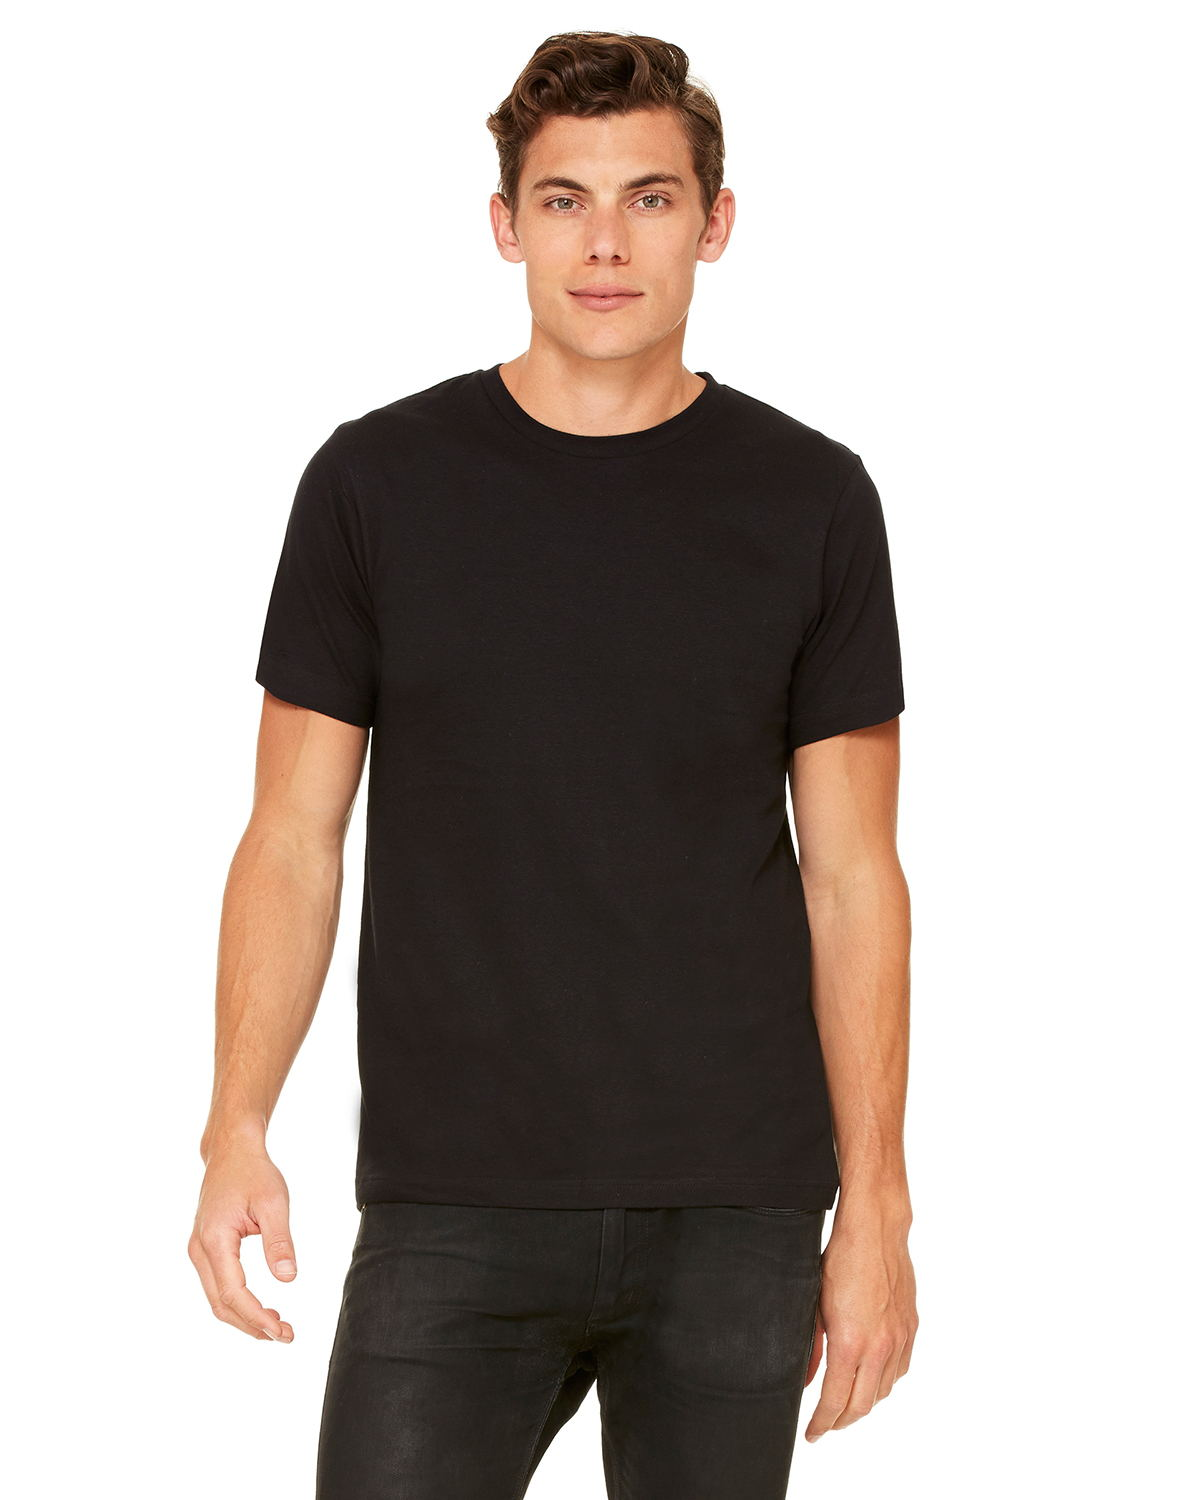 Canvas 3650 - Polyester/Cotton Unisex T-Shirt